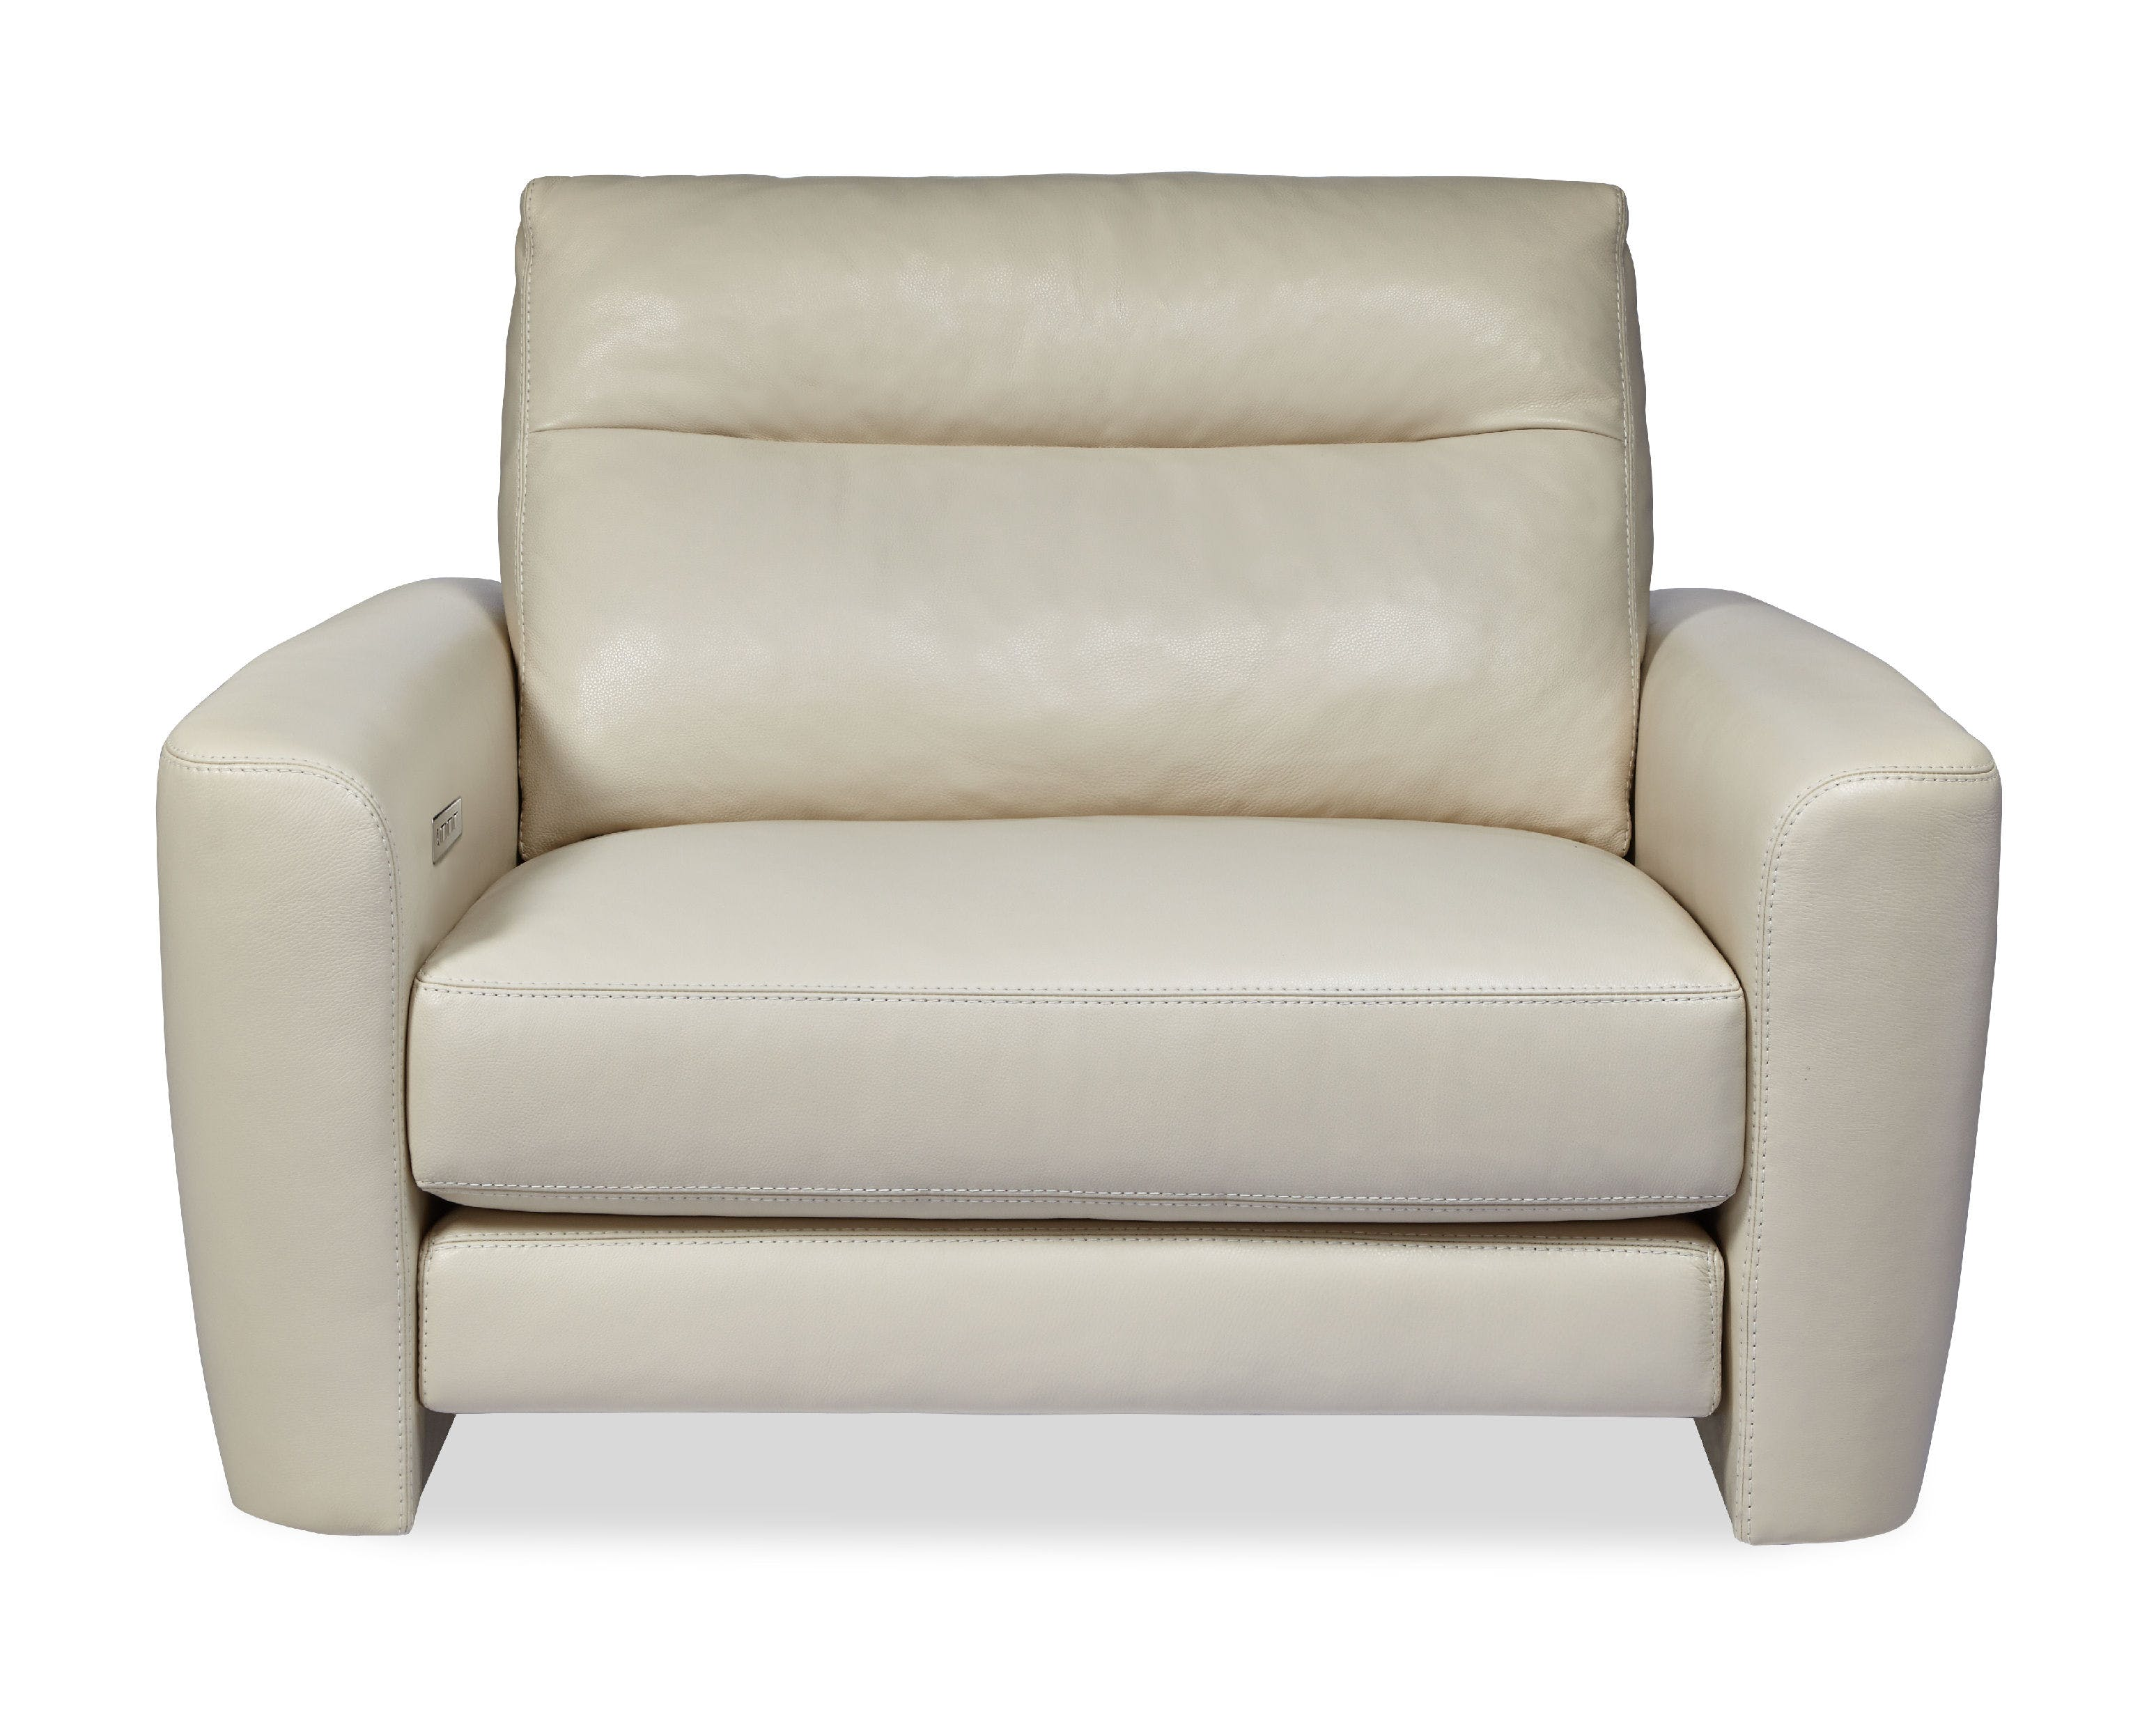 American Leather Living Room Chair and a Half CLS-CH2-ST - McArthur